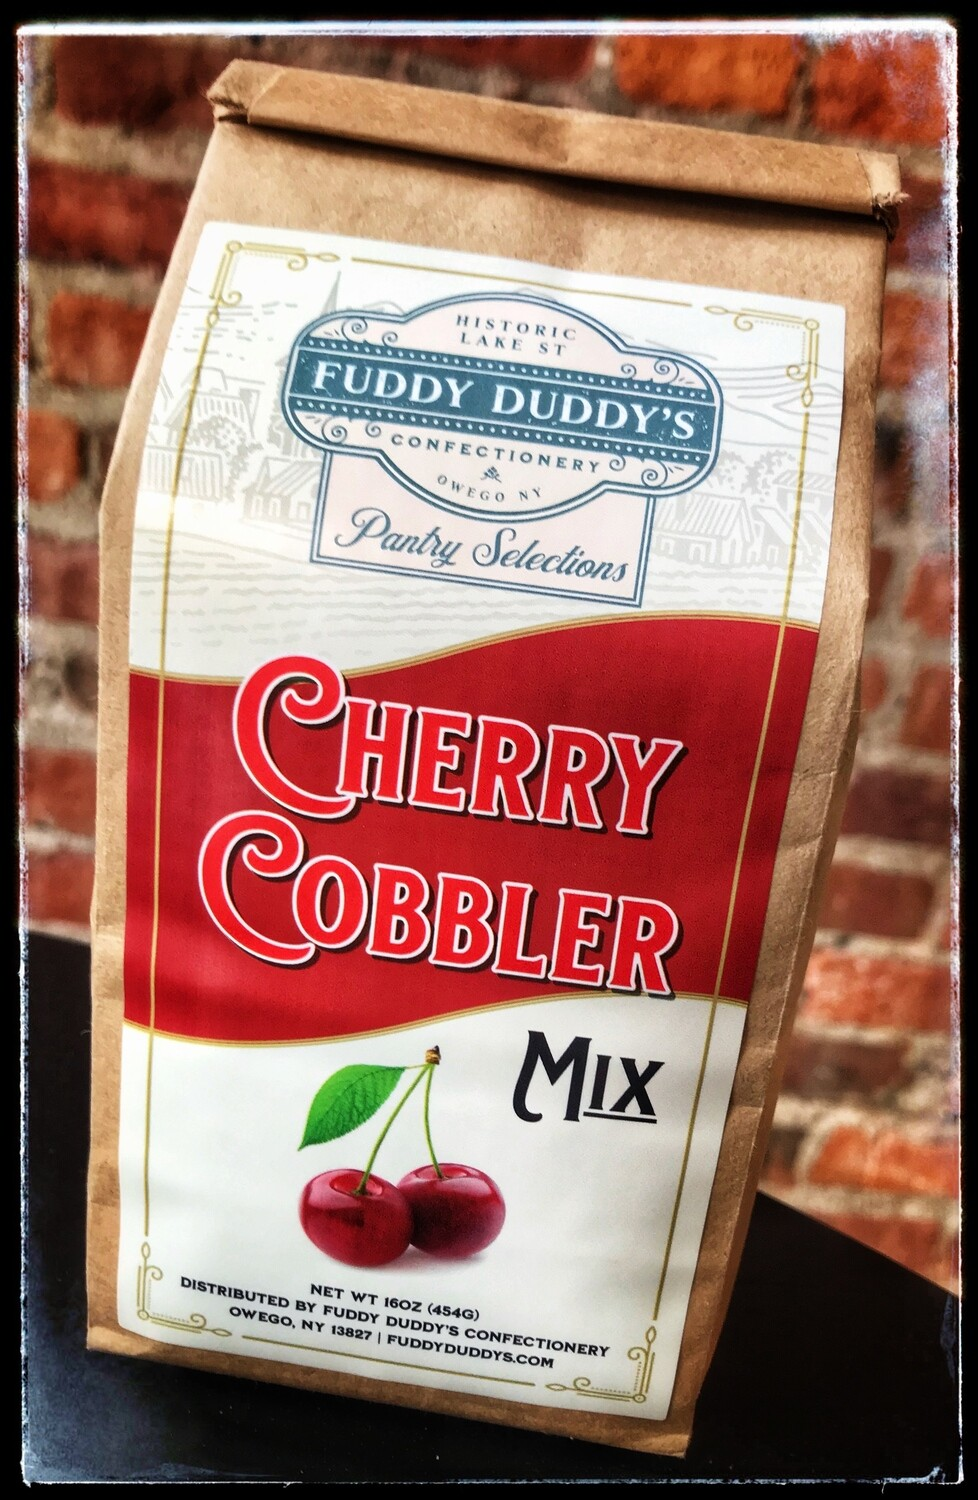 Fuddy Duddy's Cherry Cobbler Mix